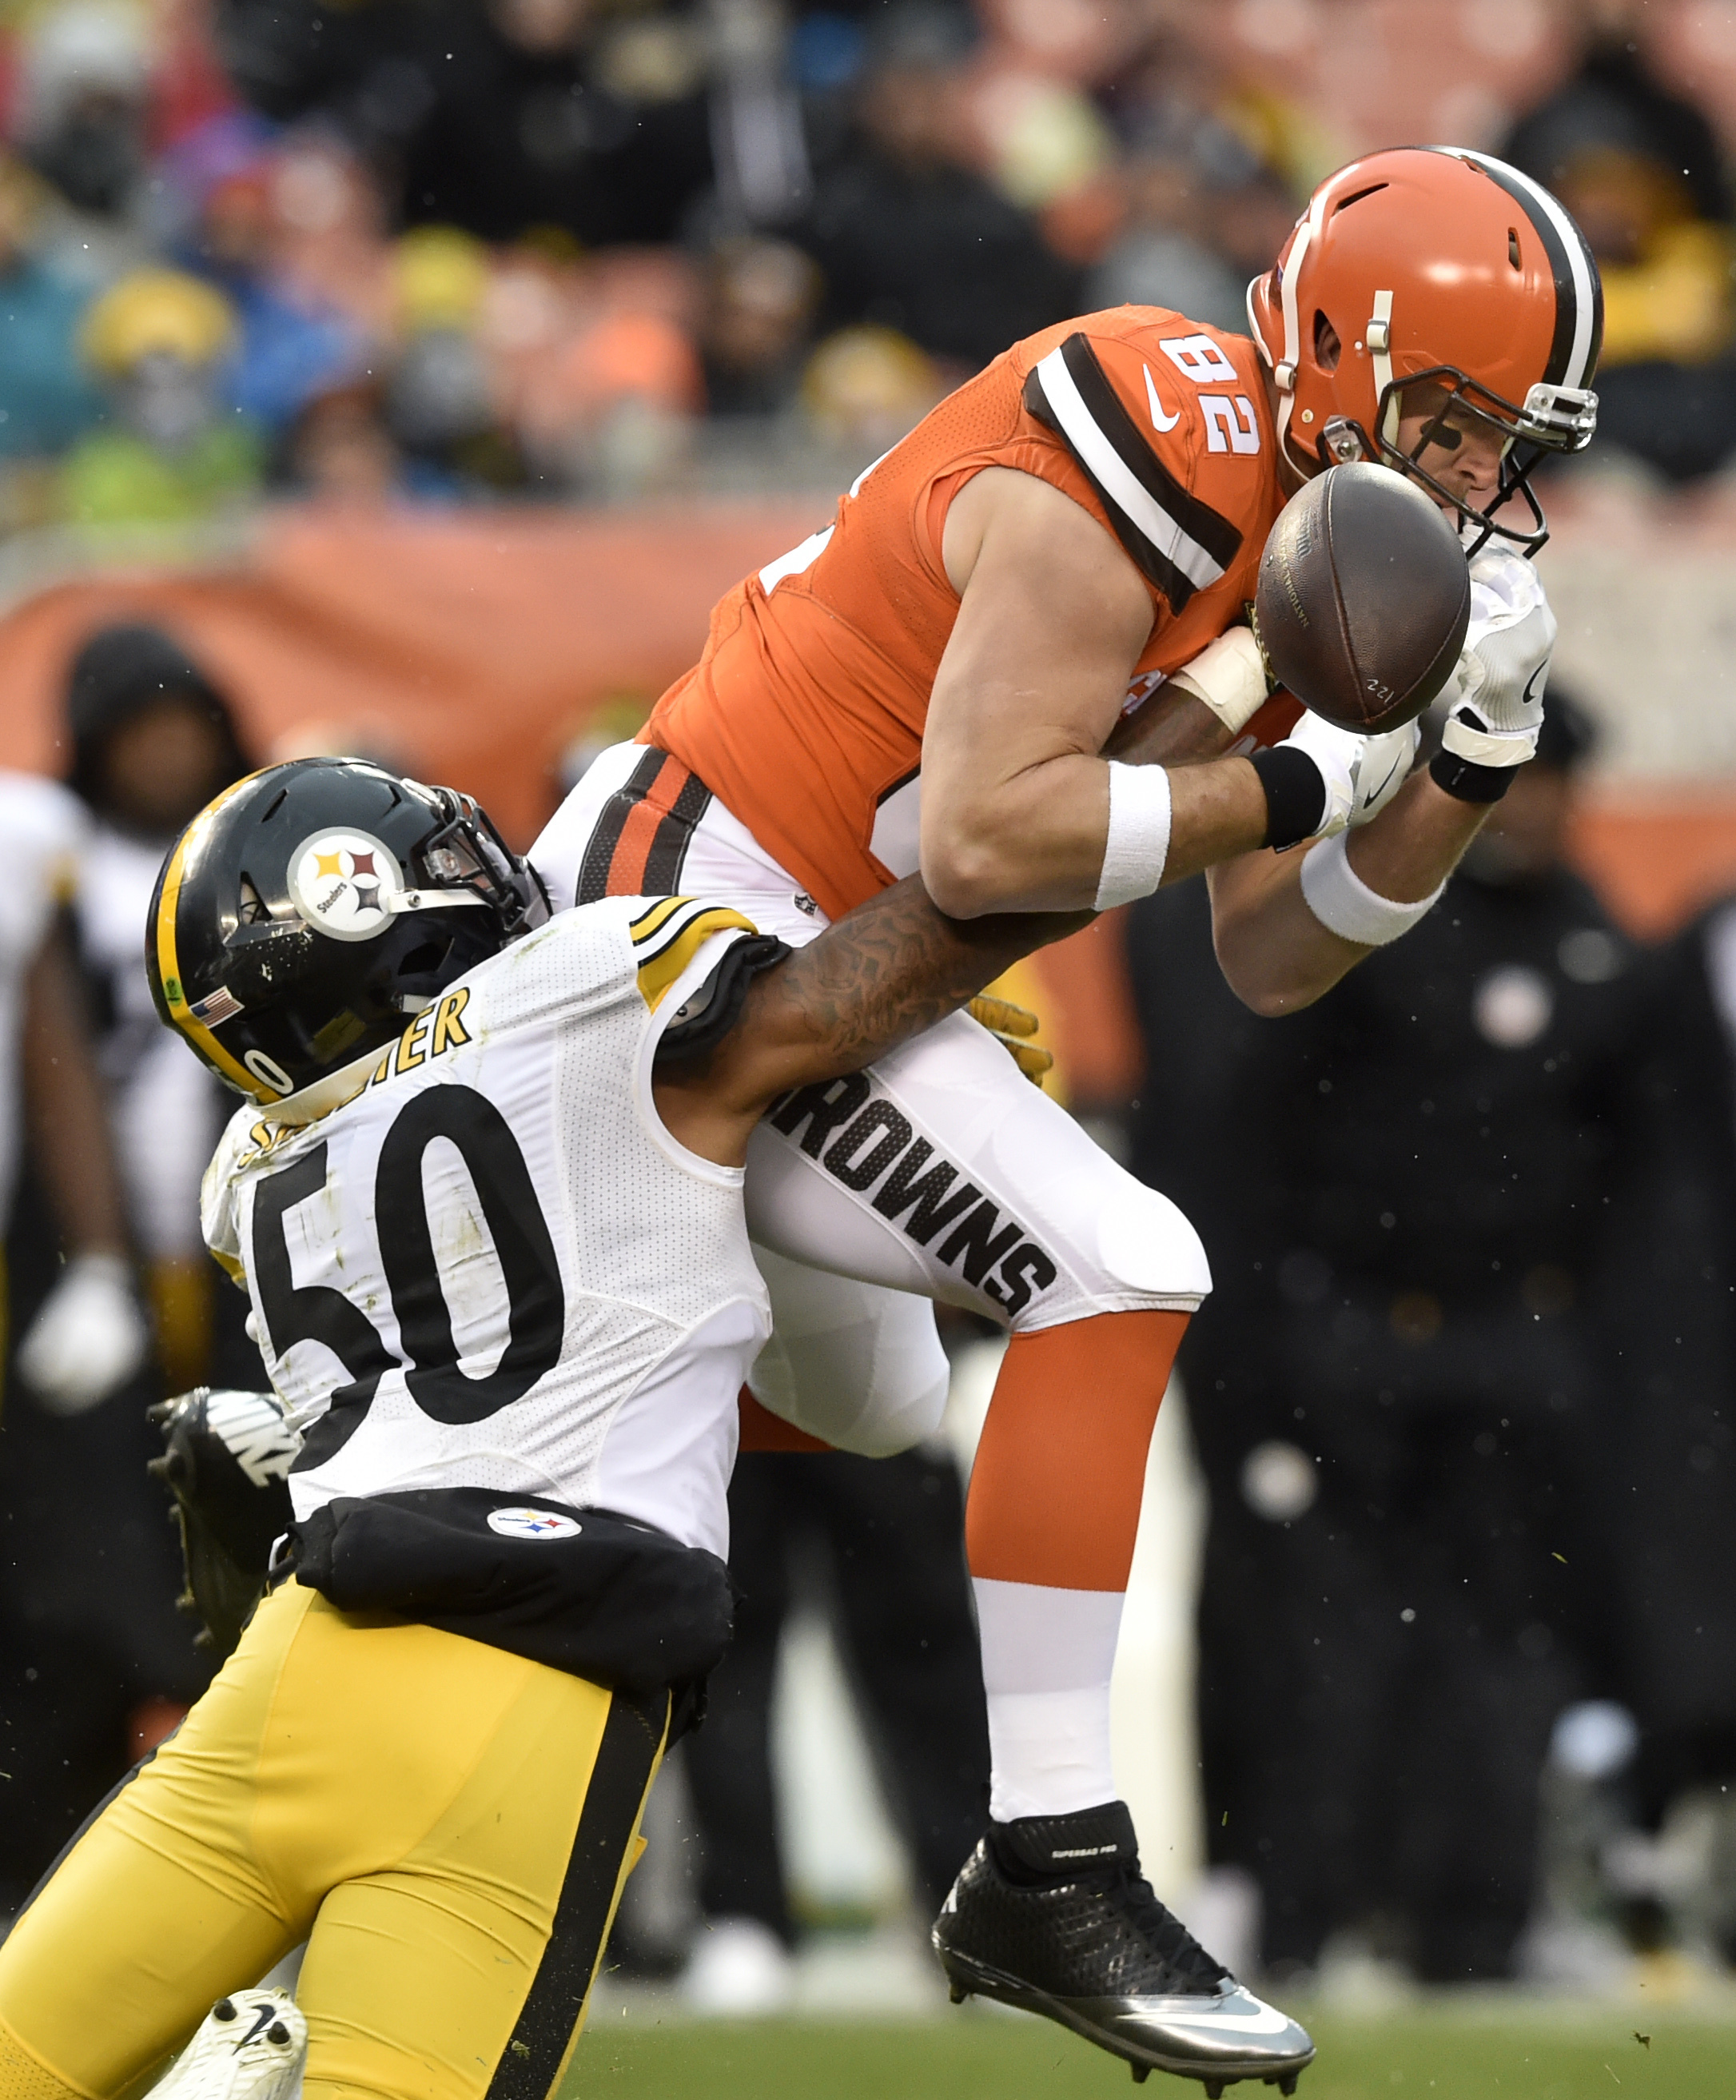 Cleveland Browns tight end Gary Barnidge (82) can't hang on to the ball as he is hit by Pittsburgh Steelers inside linebacker Ryan Shazier (50) during the second half of an NFL football game in Cleveland, Sunday, Nov. 20, 2016. (AP Photo/David Richard)